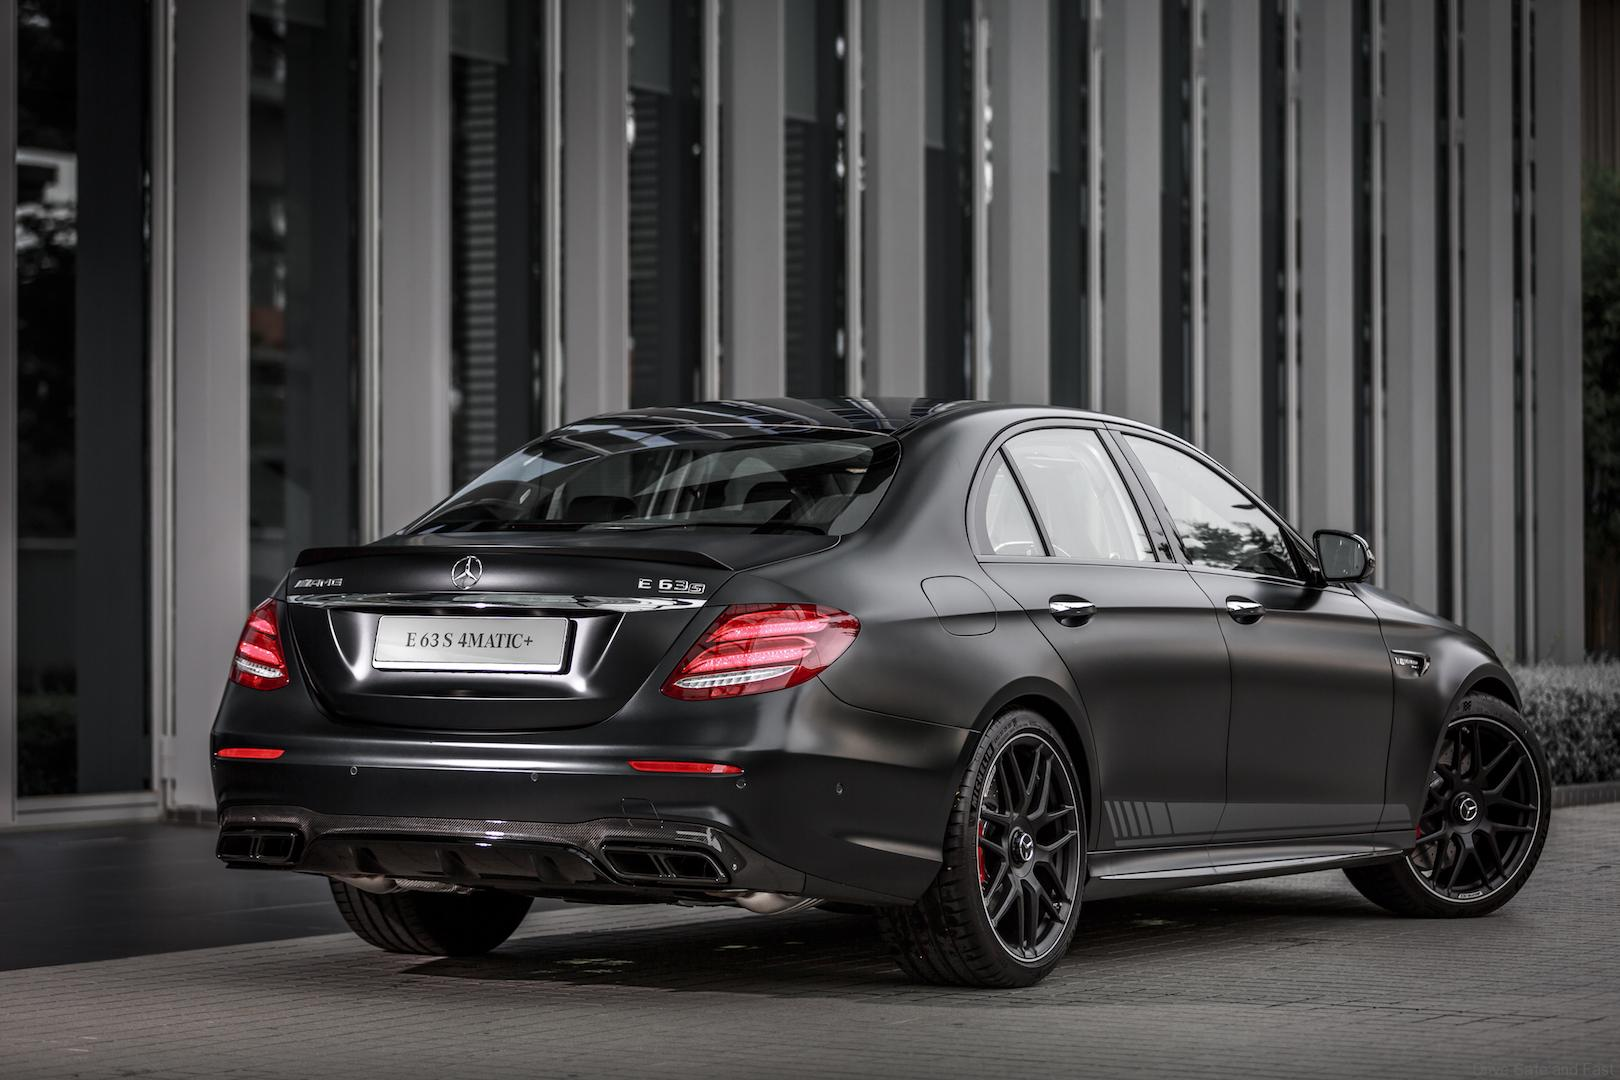 mercedes amg e 63 s 4matic 0 100 in rm998. Black Bedroom Furniture Sets. Home Design Ideas